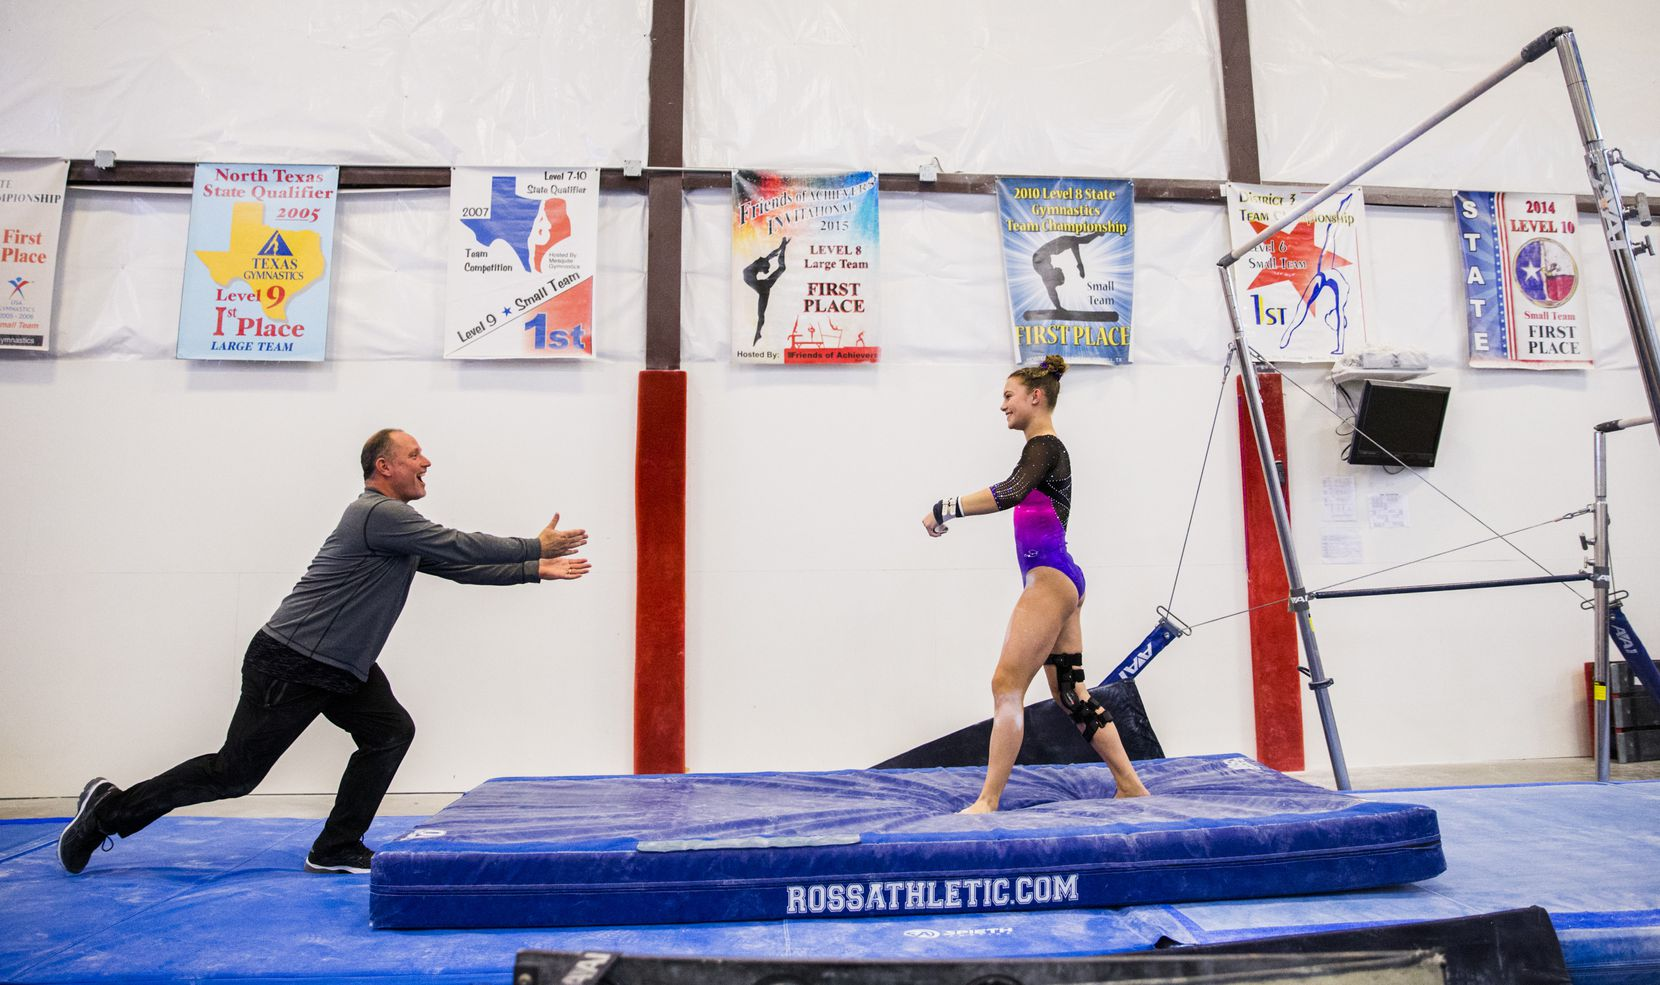 U.S. Gold Gymnastics coach Bobby Dombrowski runs to congratulate Hannah Ewing, 18, on her bar routine during the Zenith Winter Classic meet on Saturday, February 24, 2018 at Zenith Gymnastics in McKinney, Texas. (Ashley Landis/The Dallas Morning News)